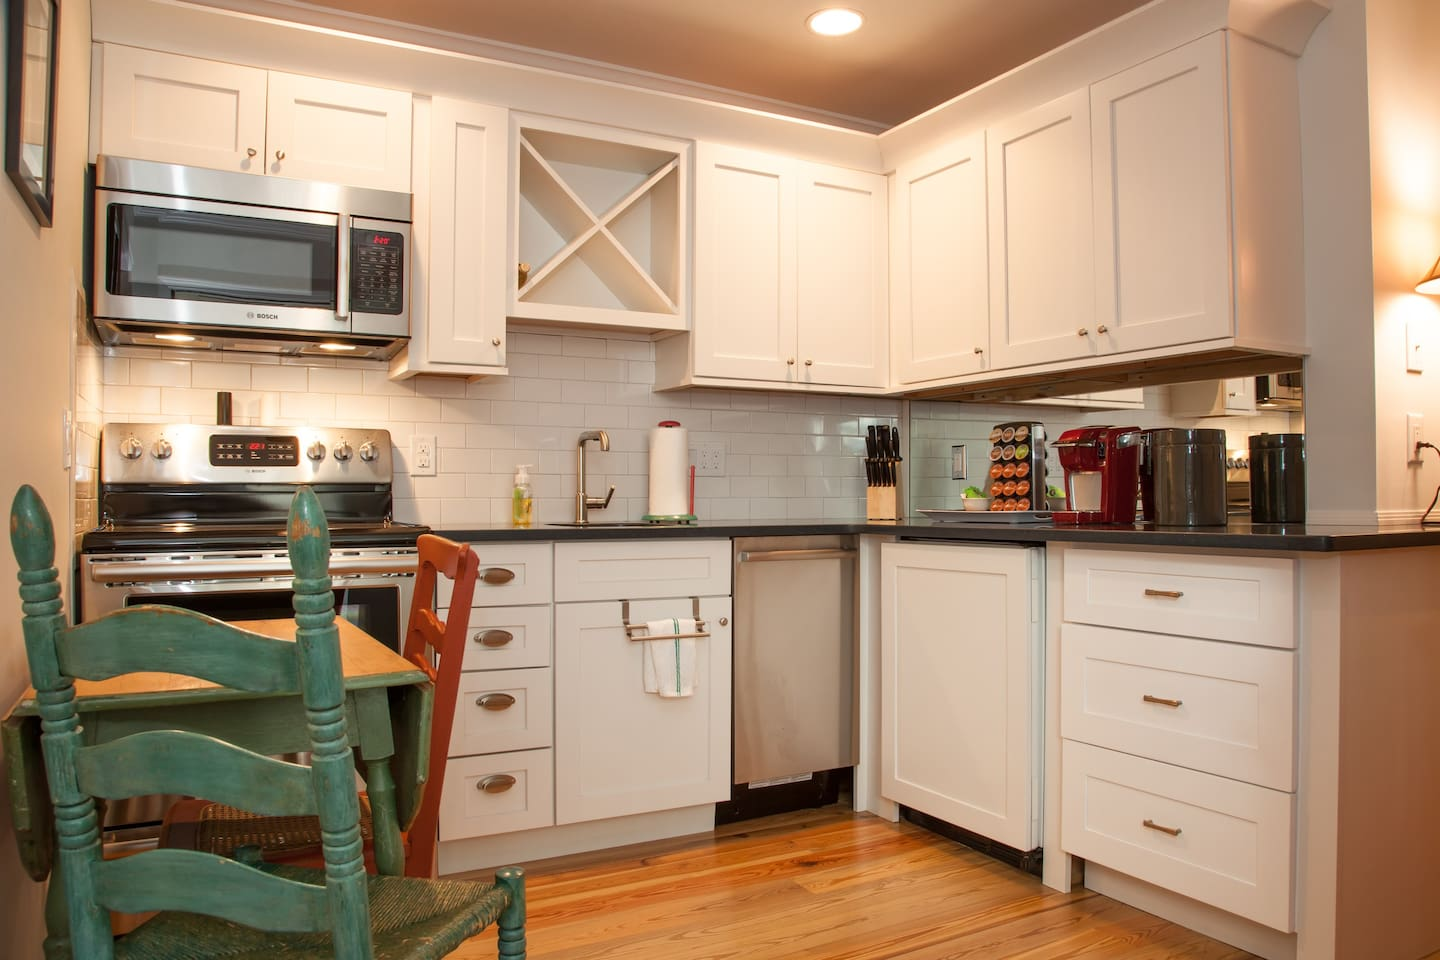 Full kitchen with pots, pans, plates, all types of cups and silverware including a mini fridge and dishwasher.